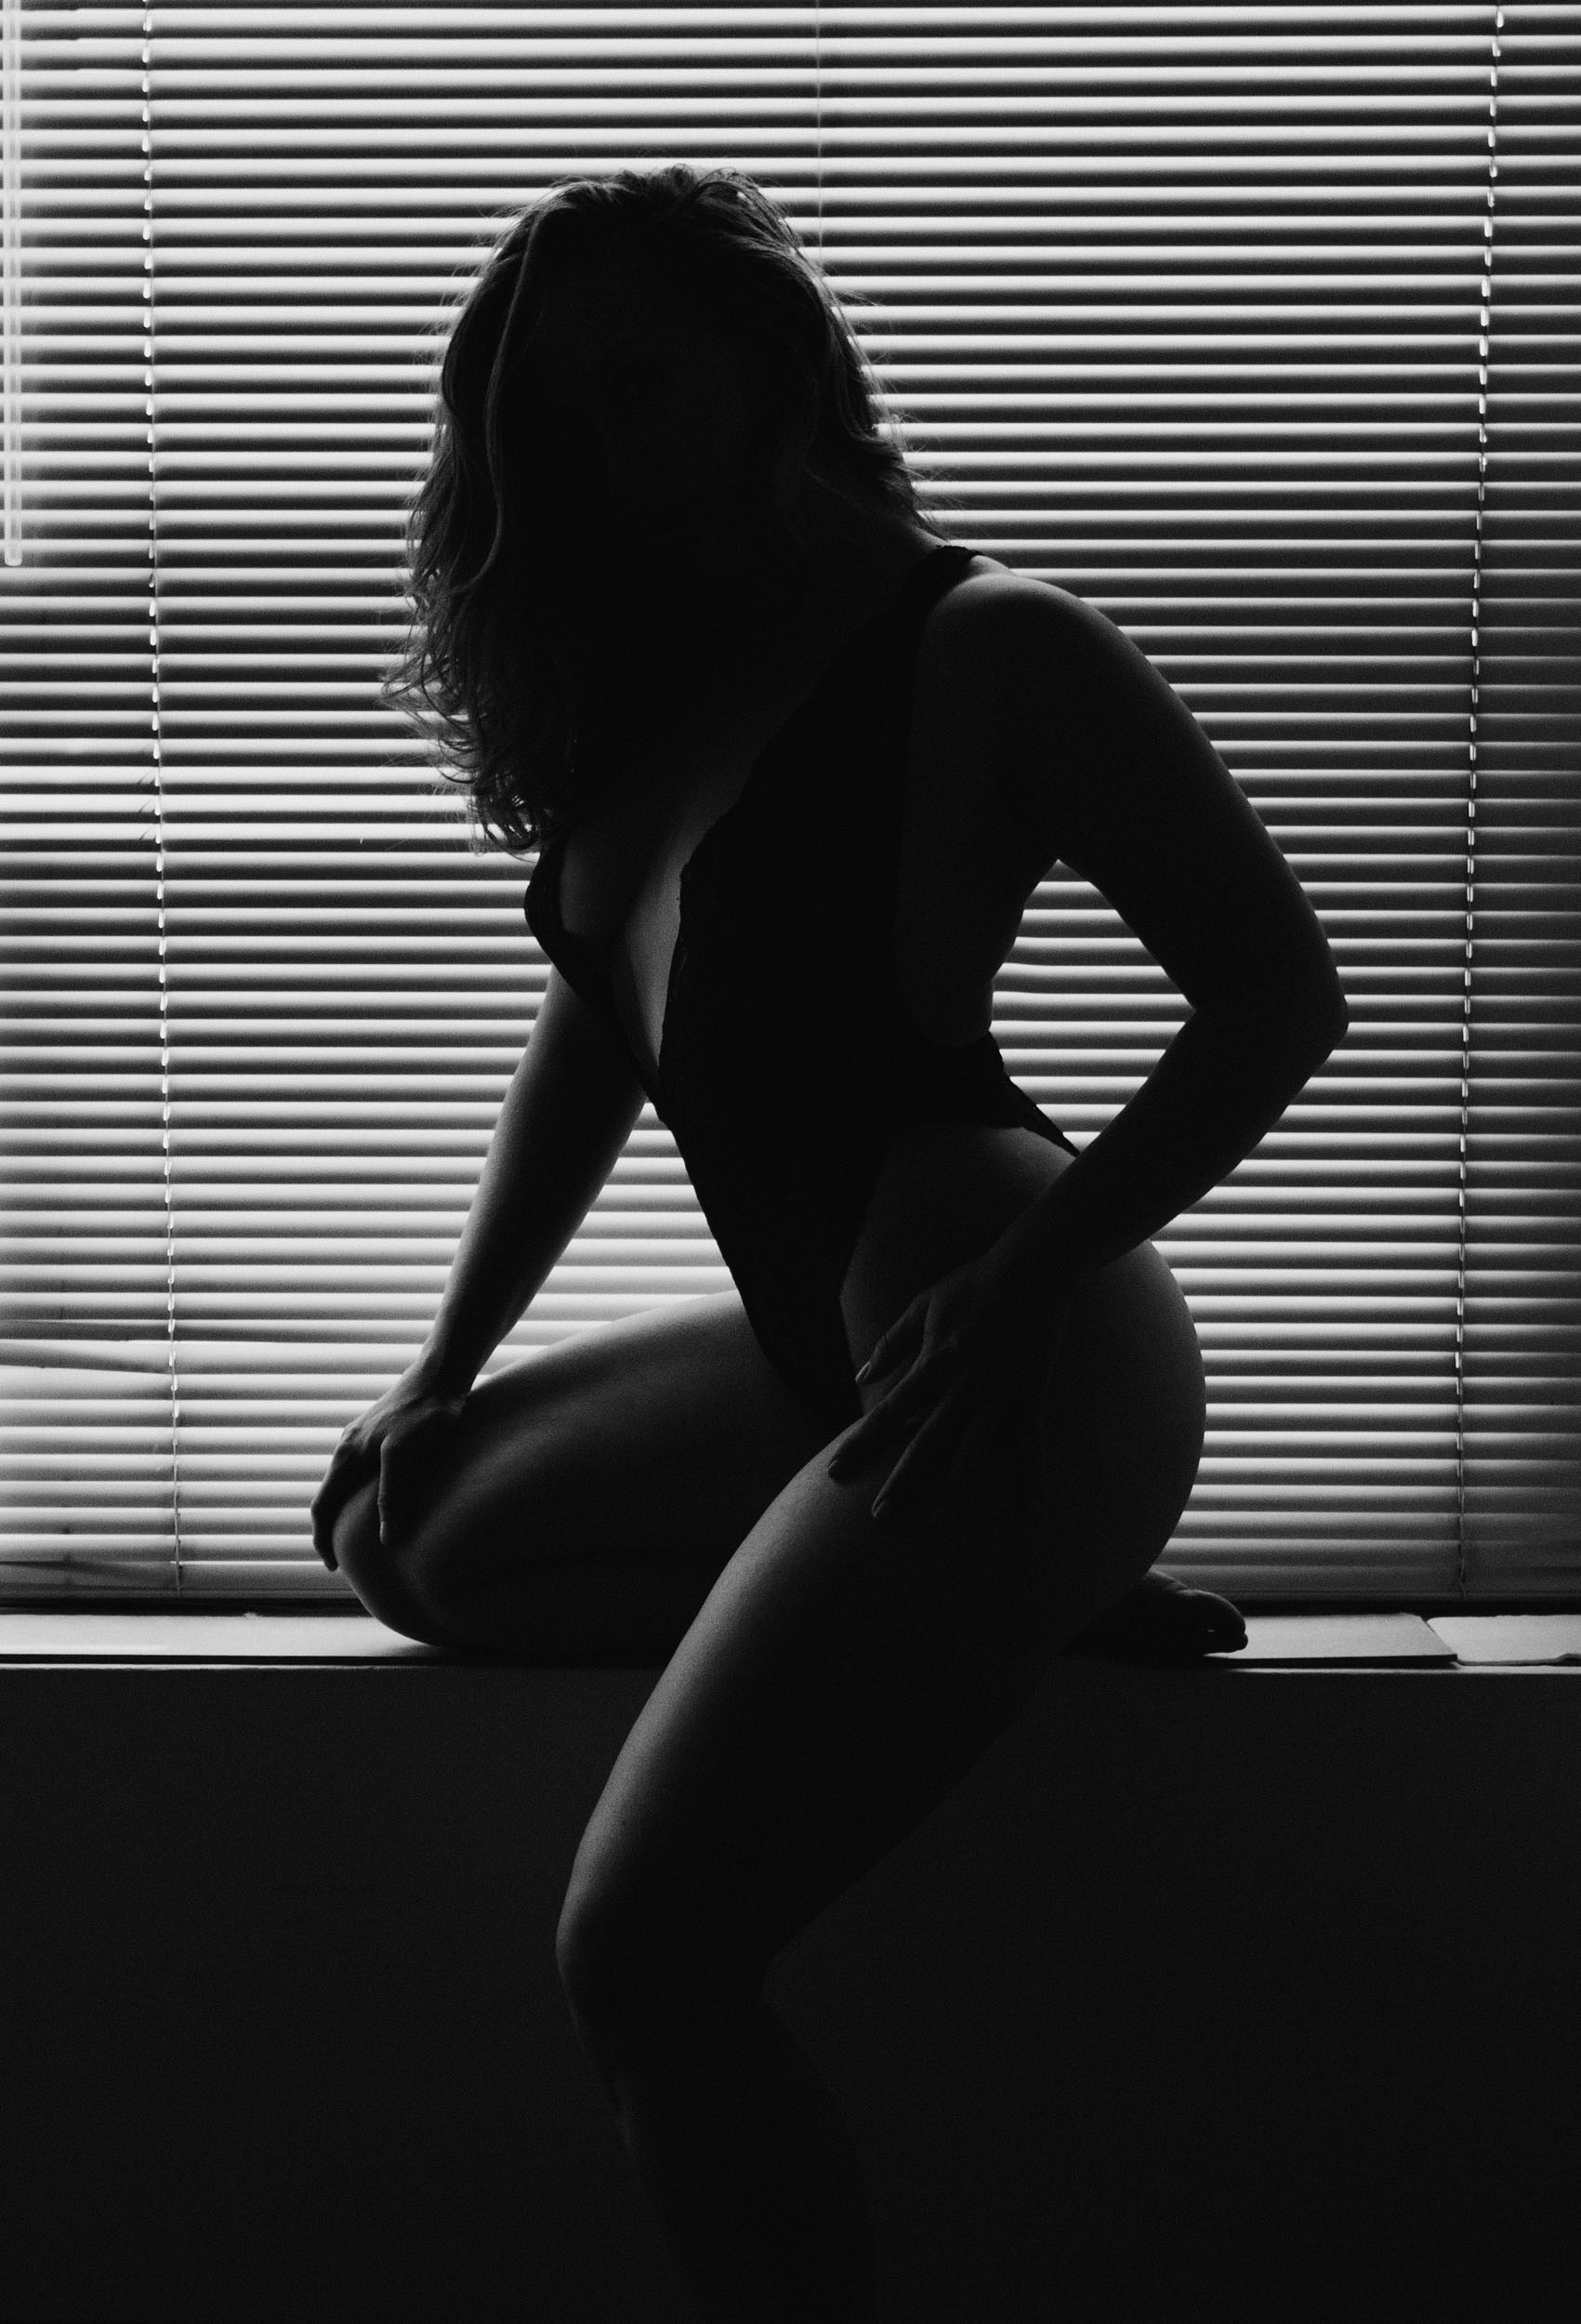 boudoir portrait of woman in black lace bodysuit silhouetted in front of miniblinds